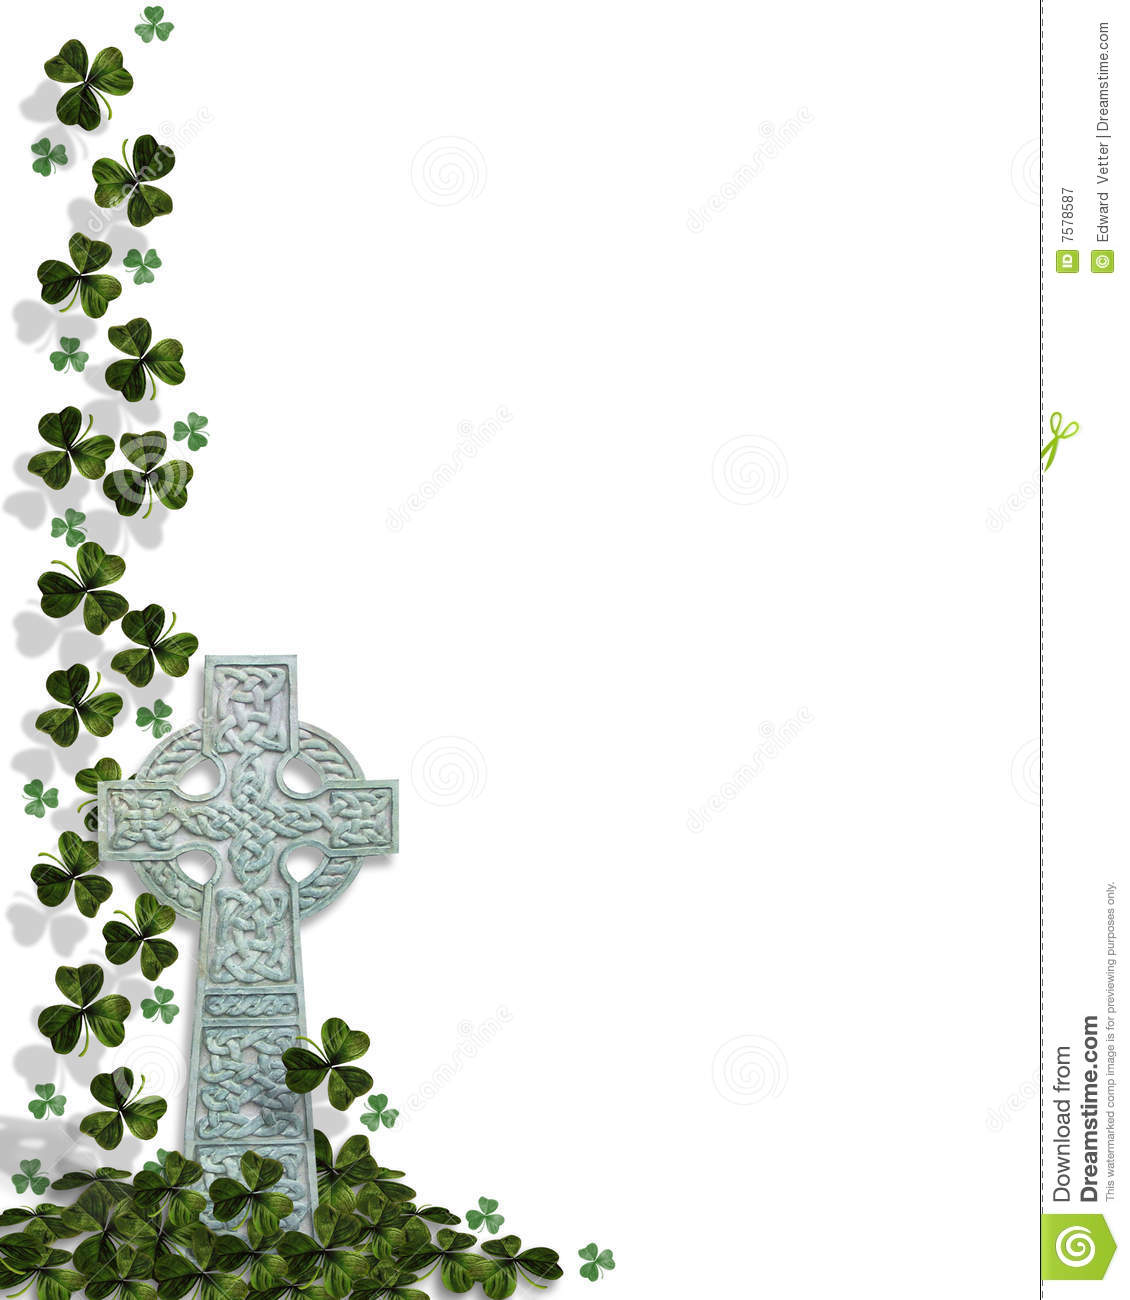 photograph relating to St Patrick's Day Cards Free Printable known as St Patricks Working day Celtic Cross Border Inventory Case in point